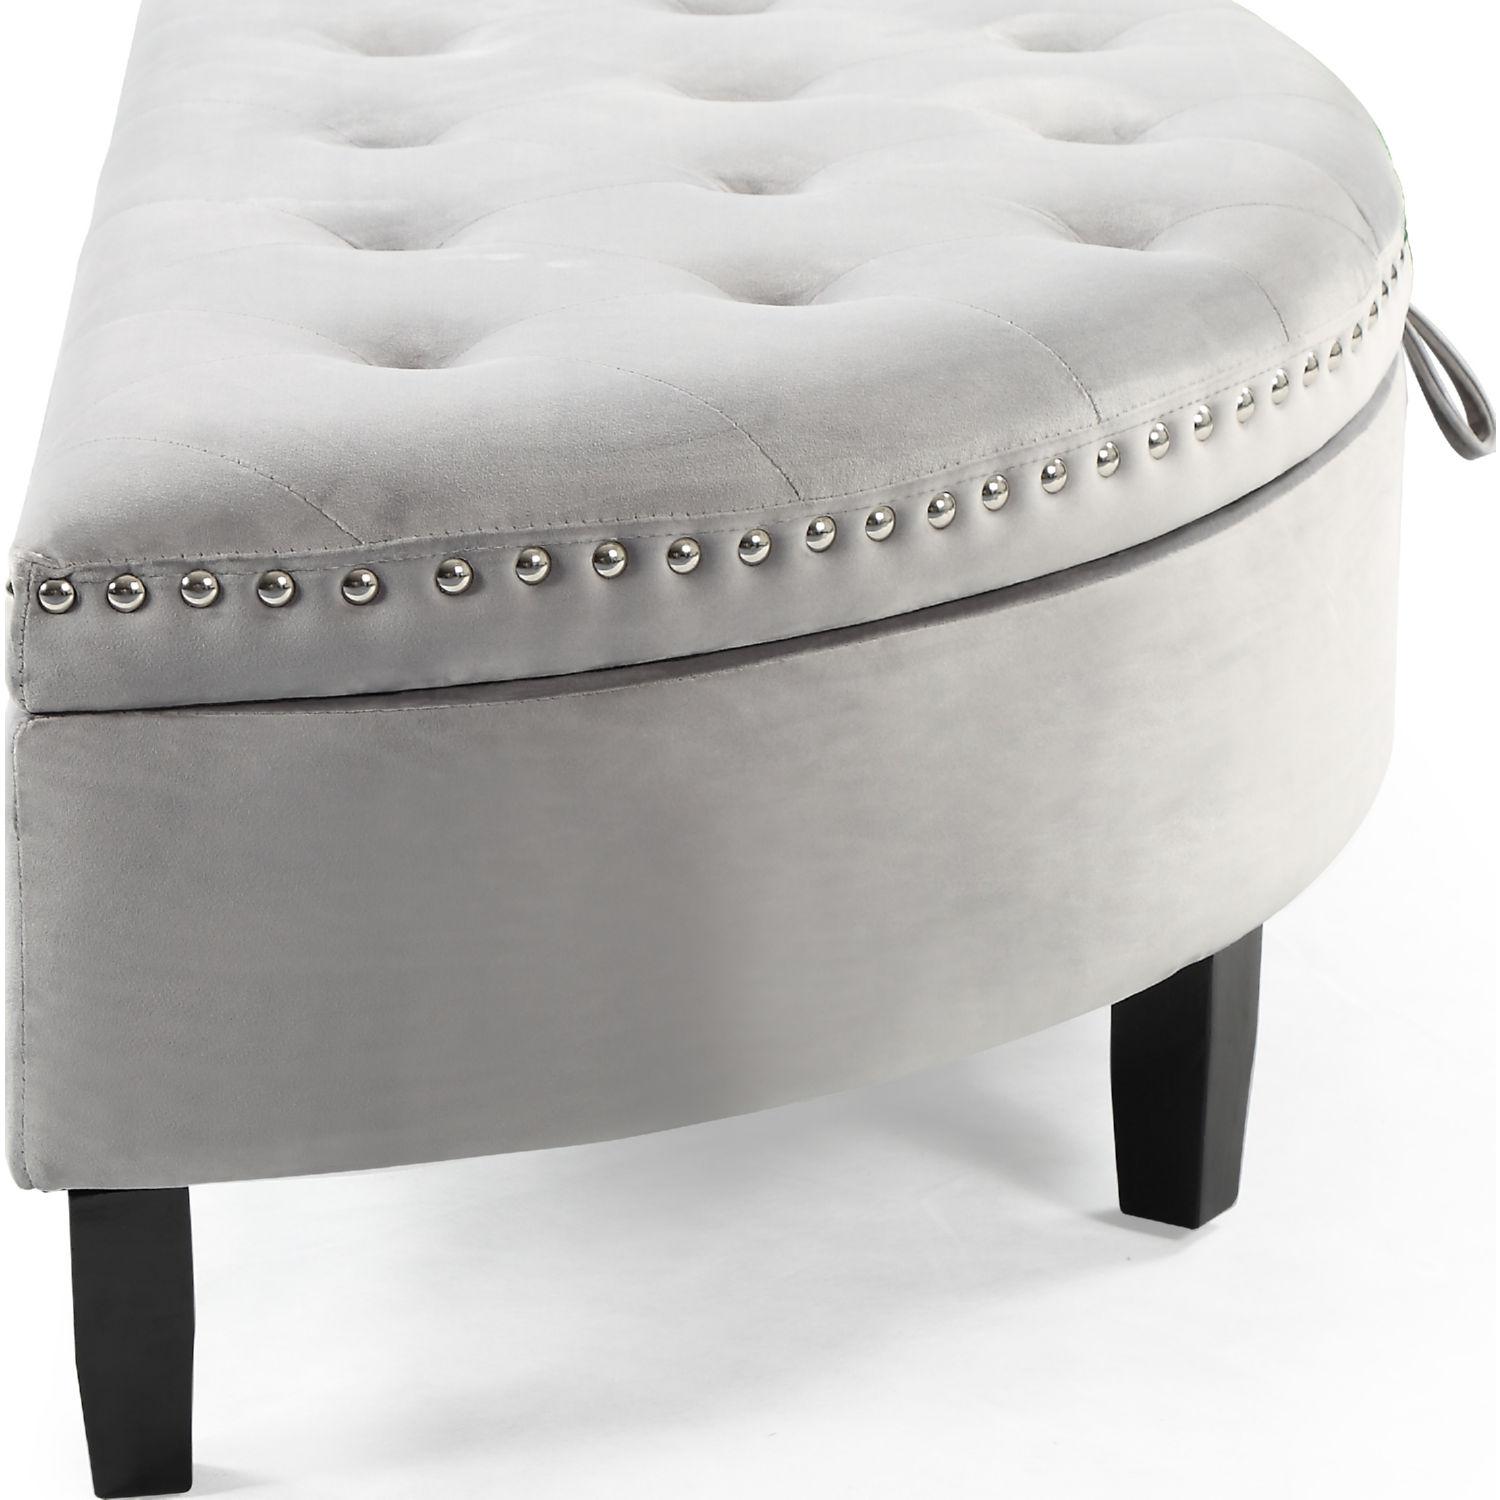 Incredible Jacqueline Half Moon Storage Ottoman In Tufted Silver Velvet By Chic Home Beatyapartments Chair Design Images Beatyapartmentscom